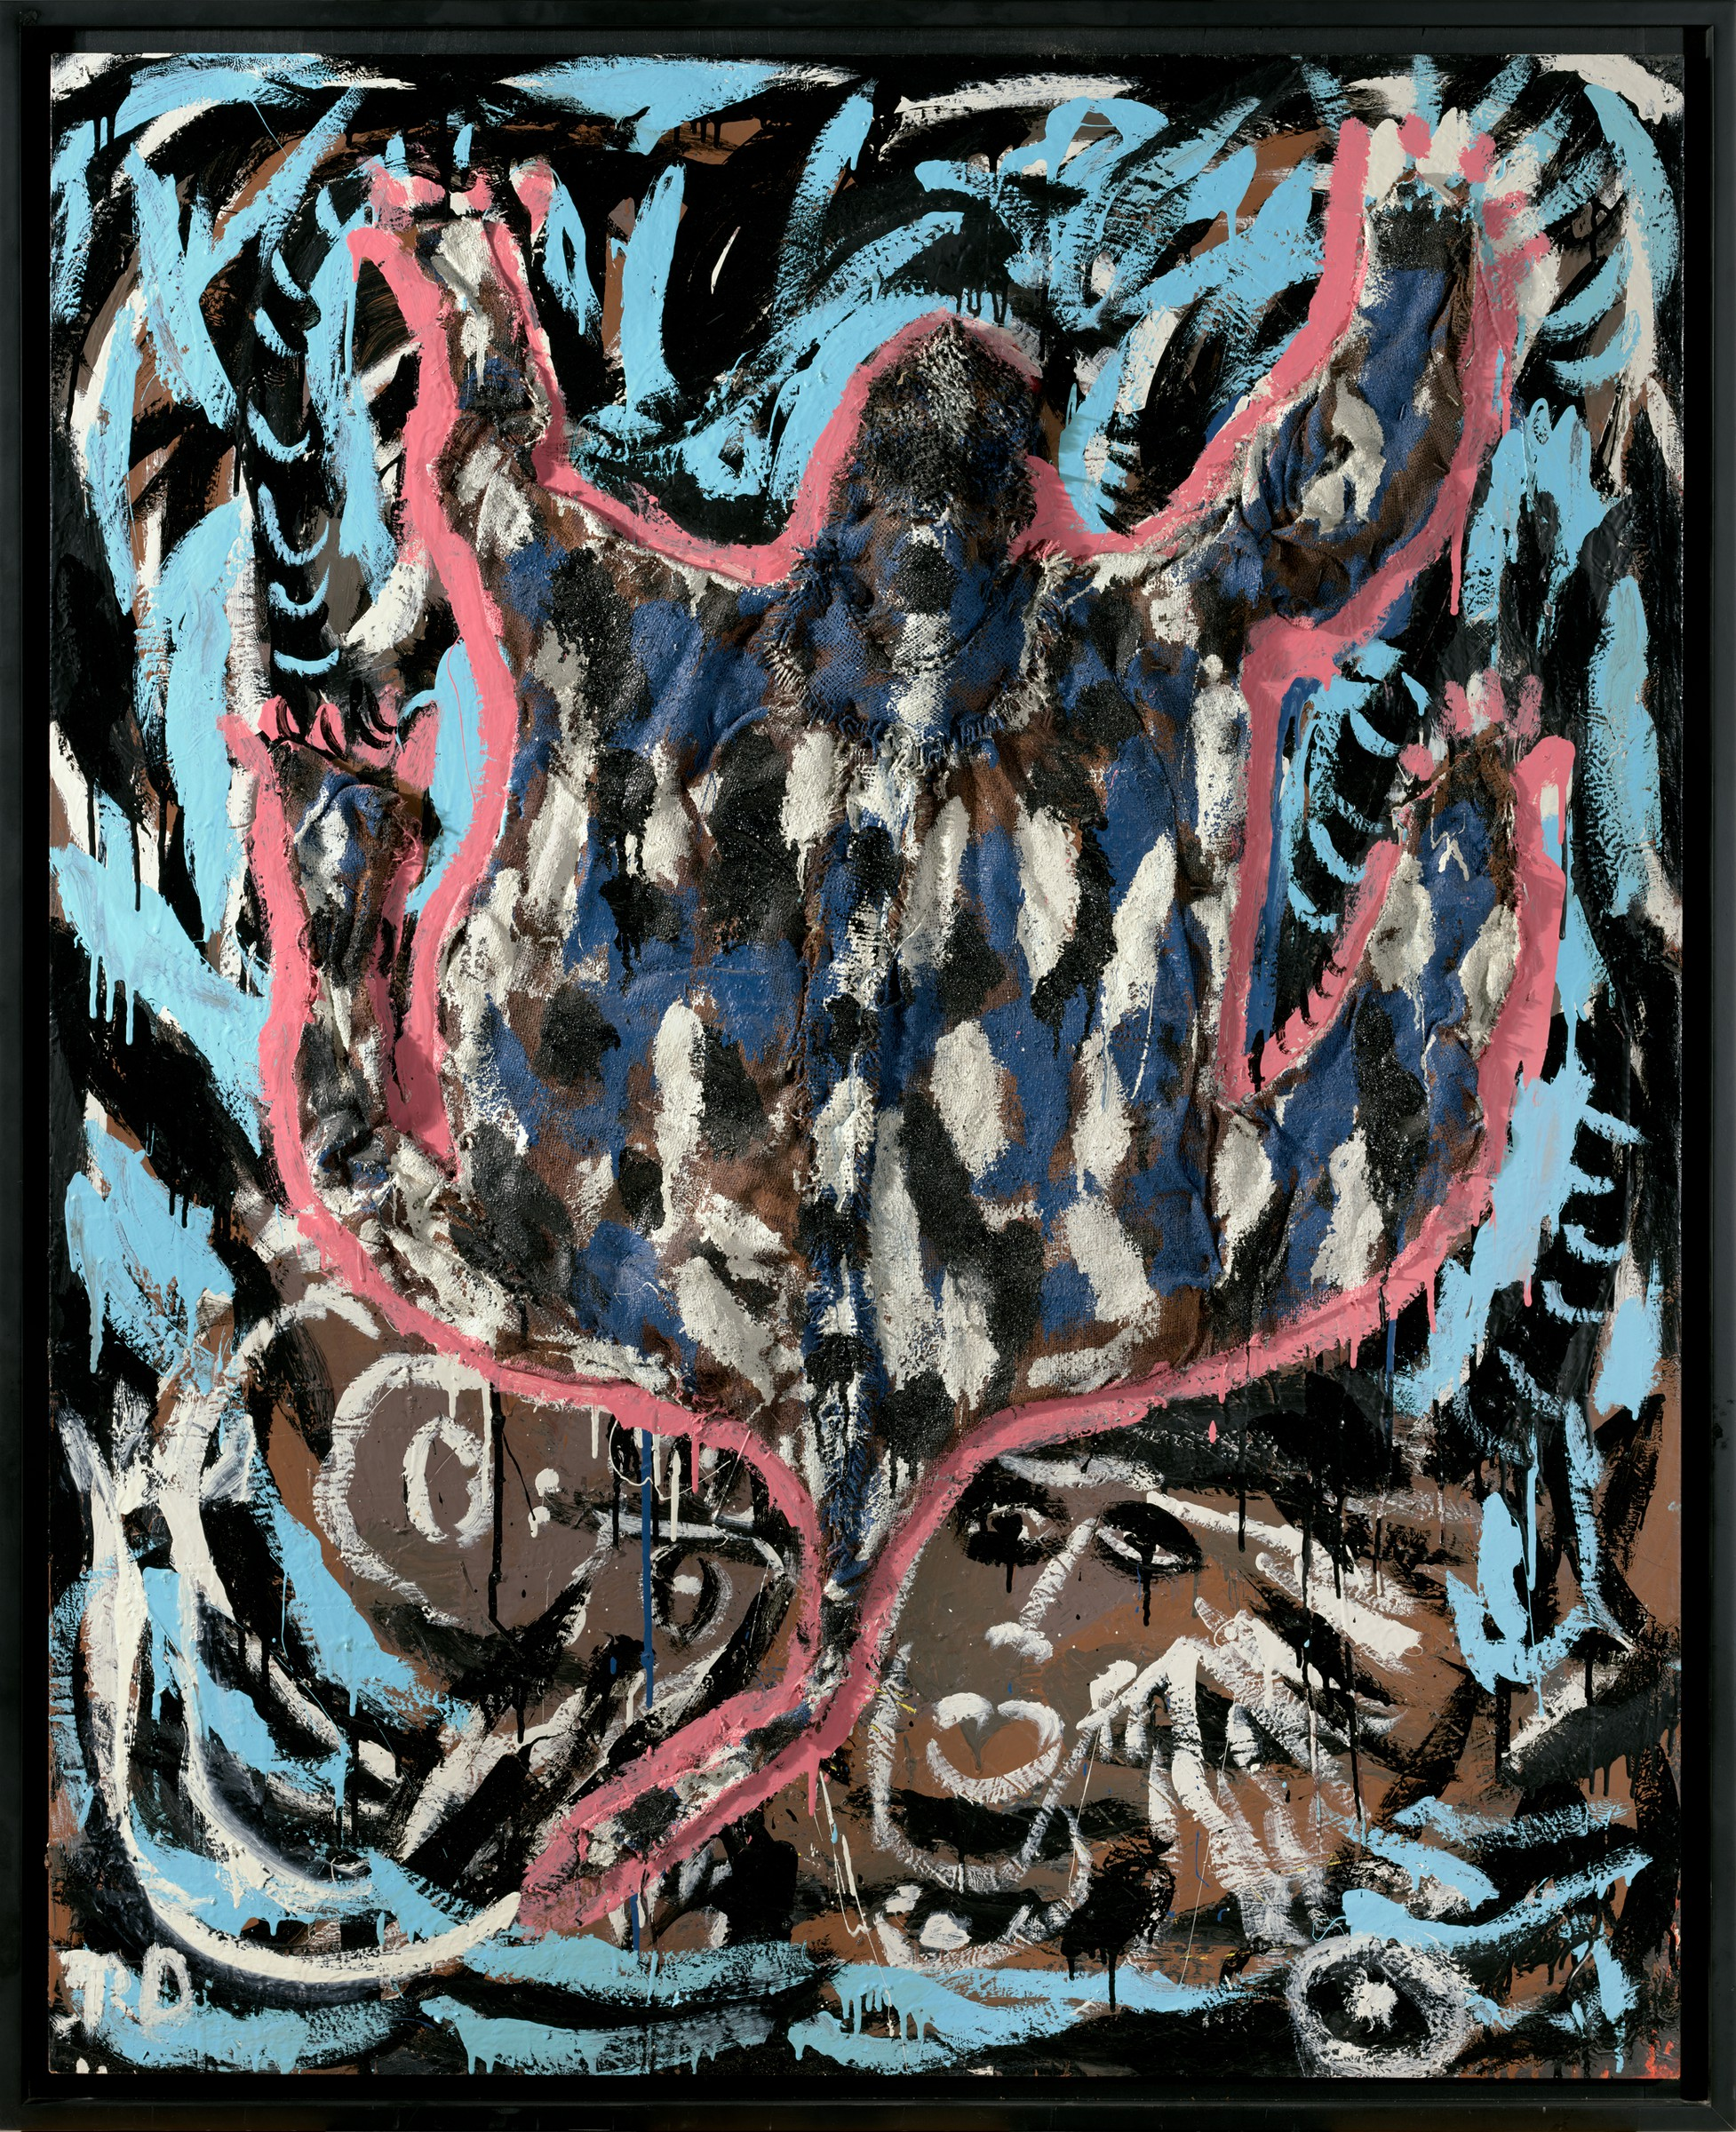 This gestural painting features a stylized turtle with outstretched limbs and a curved tail, positioned centrally above two faces reduced to their main features—outlines of eyes, nose, and lips. The symmetrical composition uses a reduced palette of black, white, blue, and coral on a brown ground.